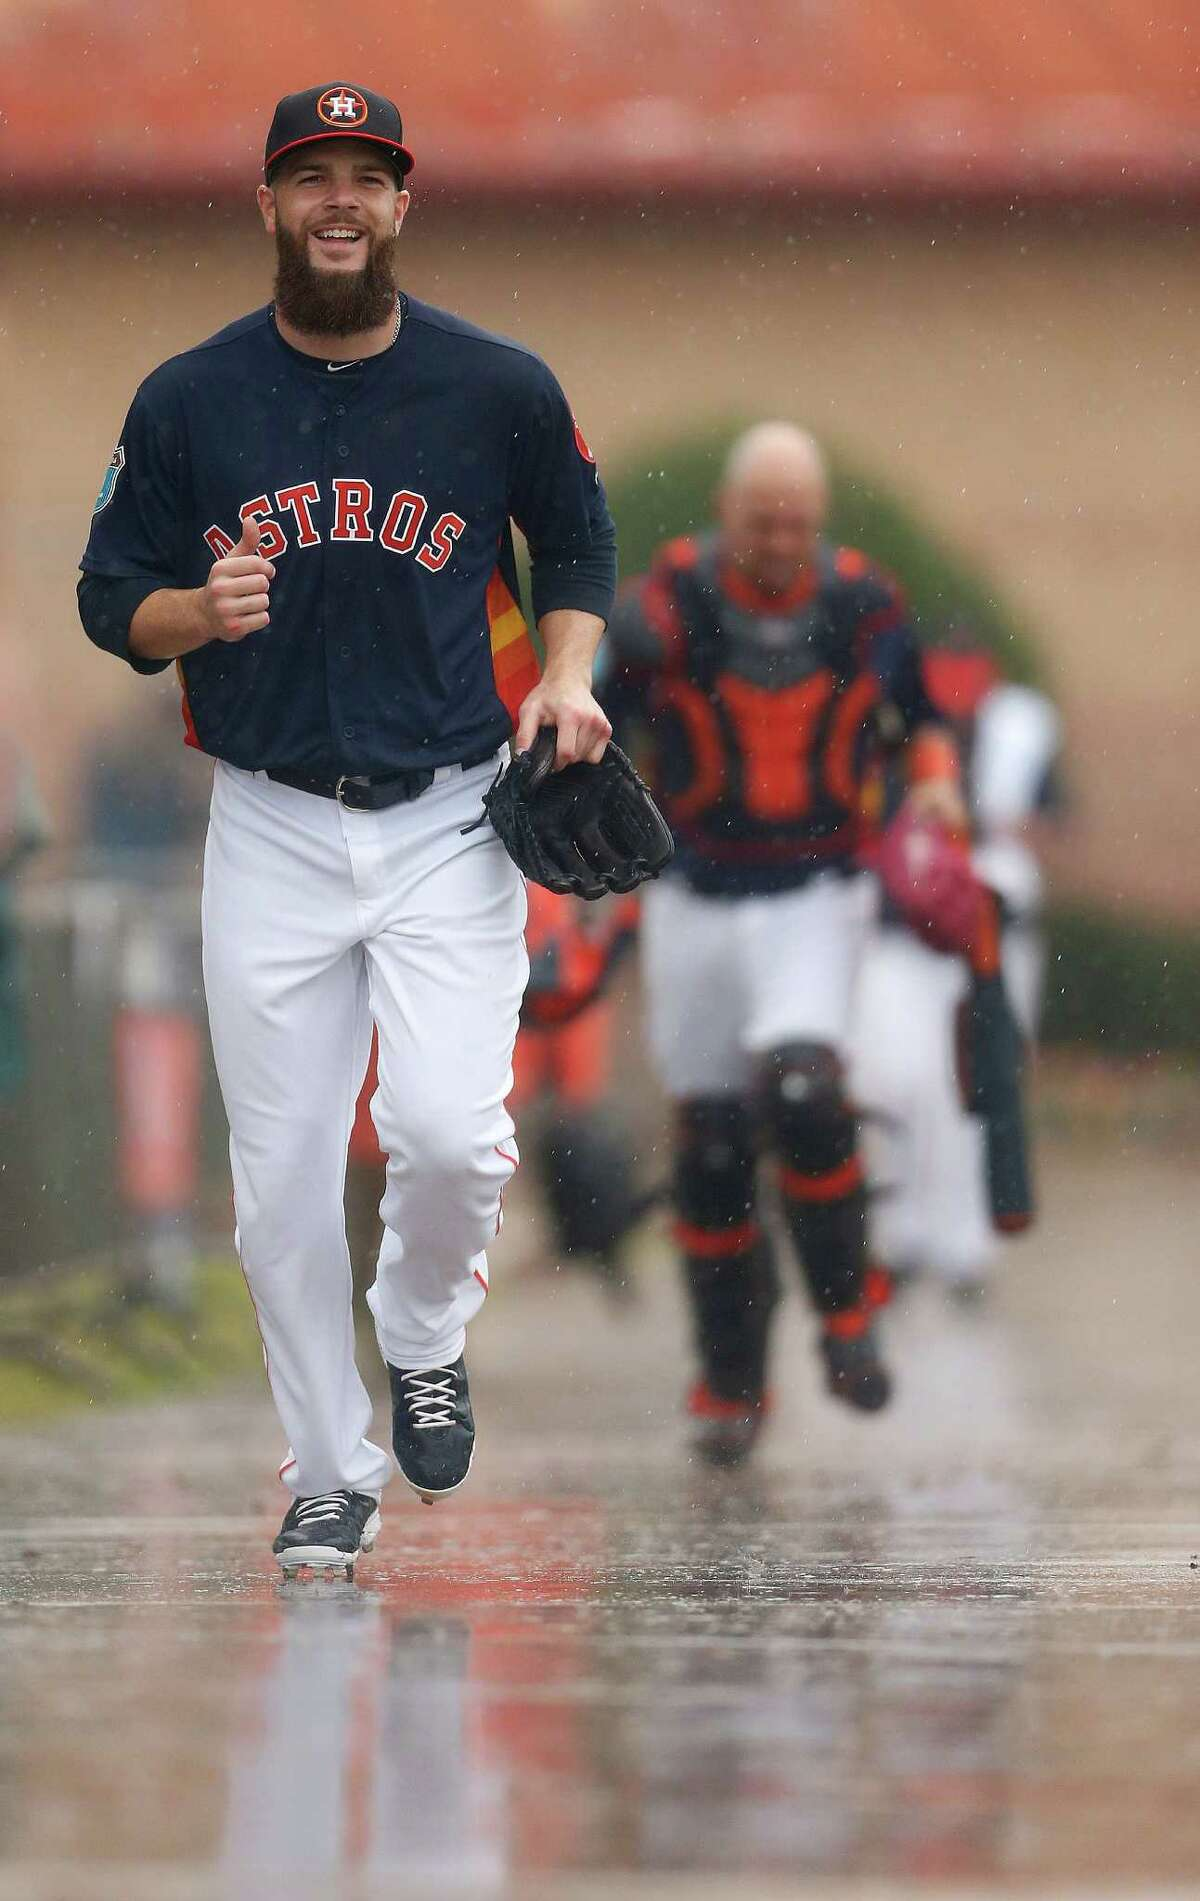 Houston Astros pitcher Dallas Keuchel runs to the batting cages as players worked out inside due to the rain during Astros spring training in Kissimmee, Florida, Wednesday, Feb. 24, 2016.